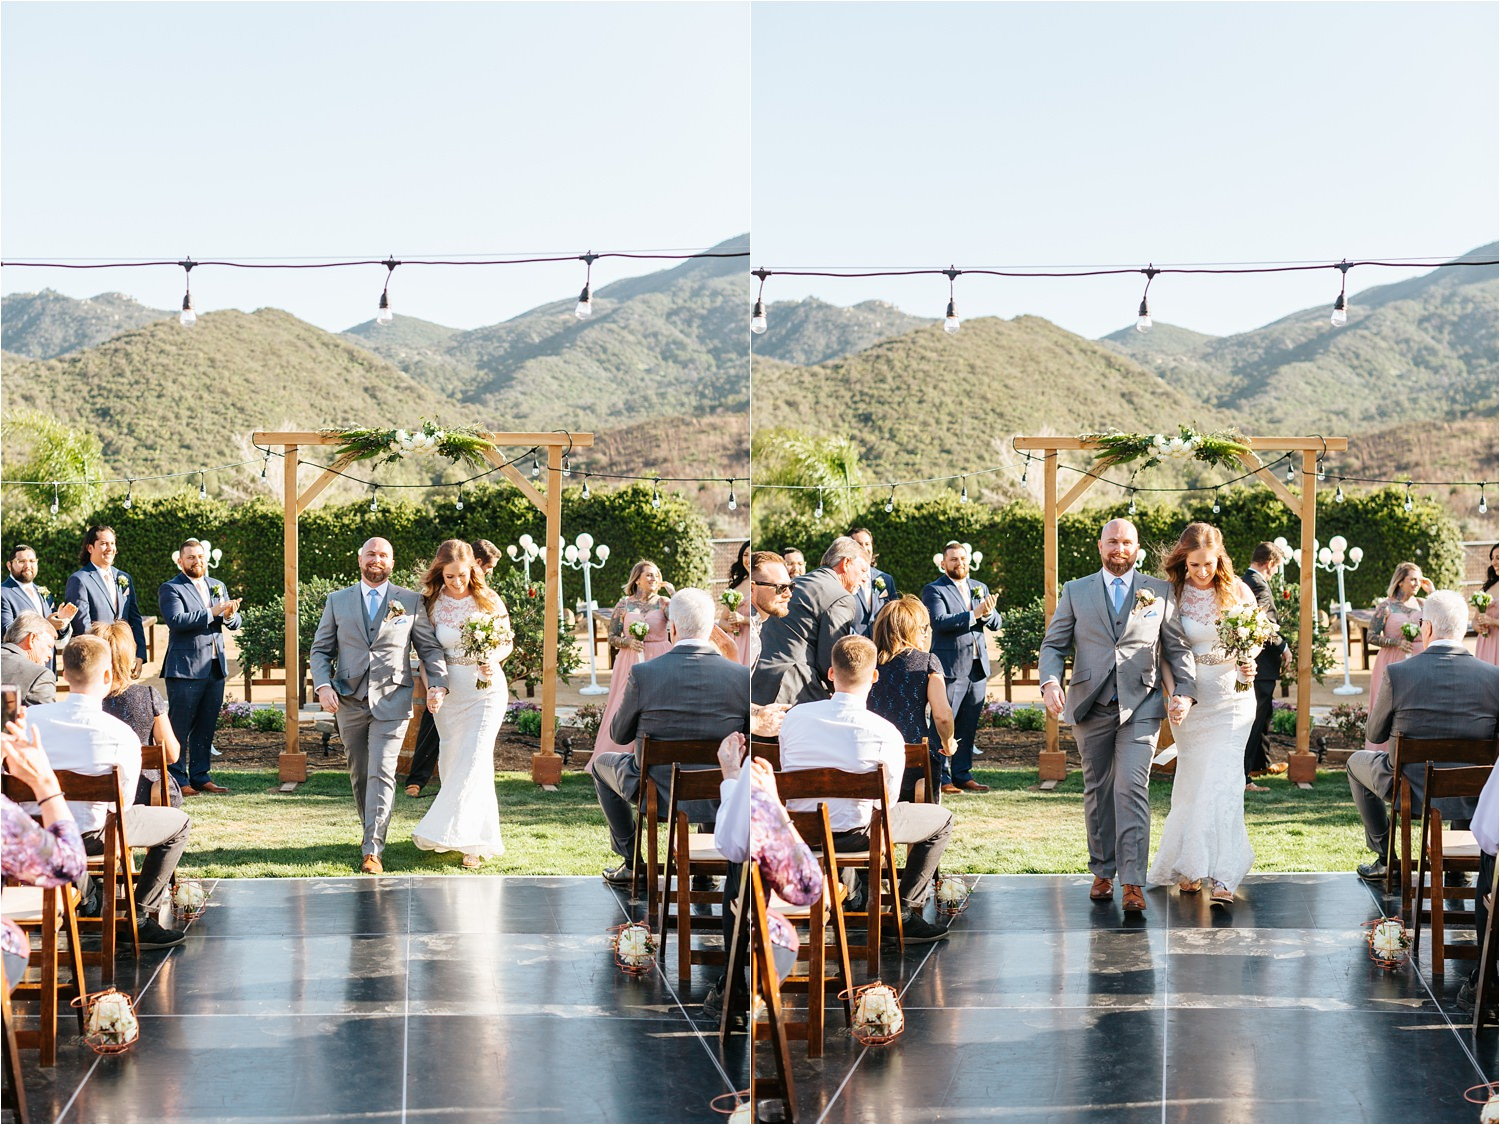 Bride and Groom walk down the aisle after wedding ceremony - https://brittneyhannonphotography.com